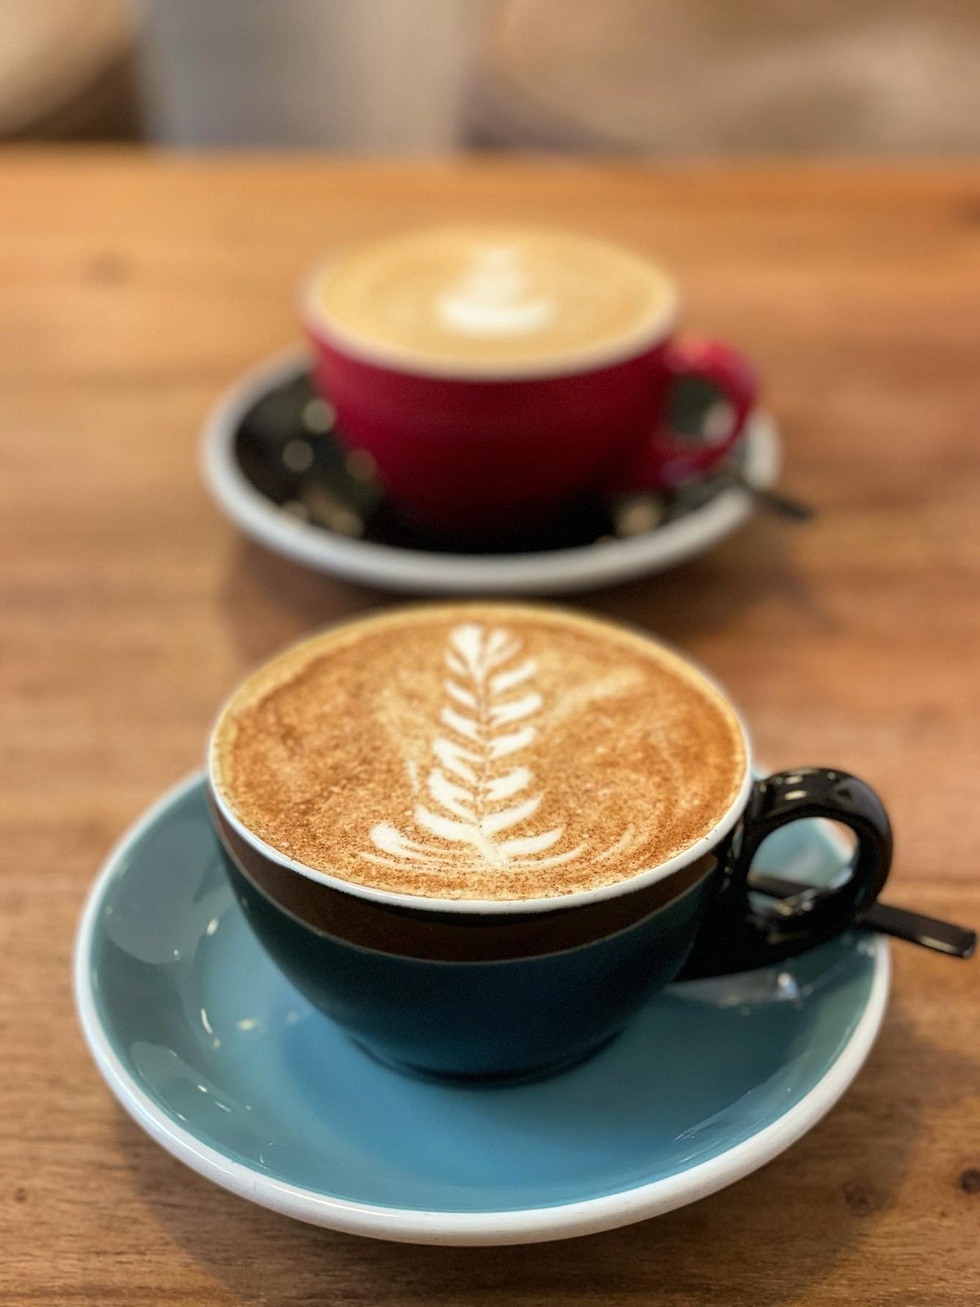 Umami Specialty Coffee